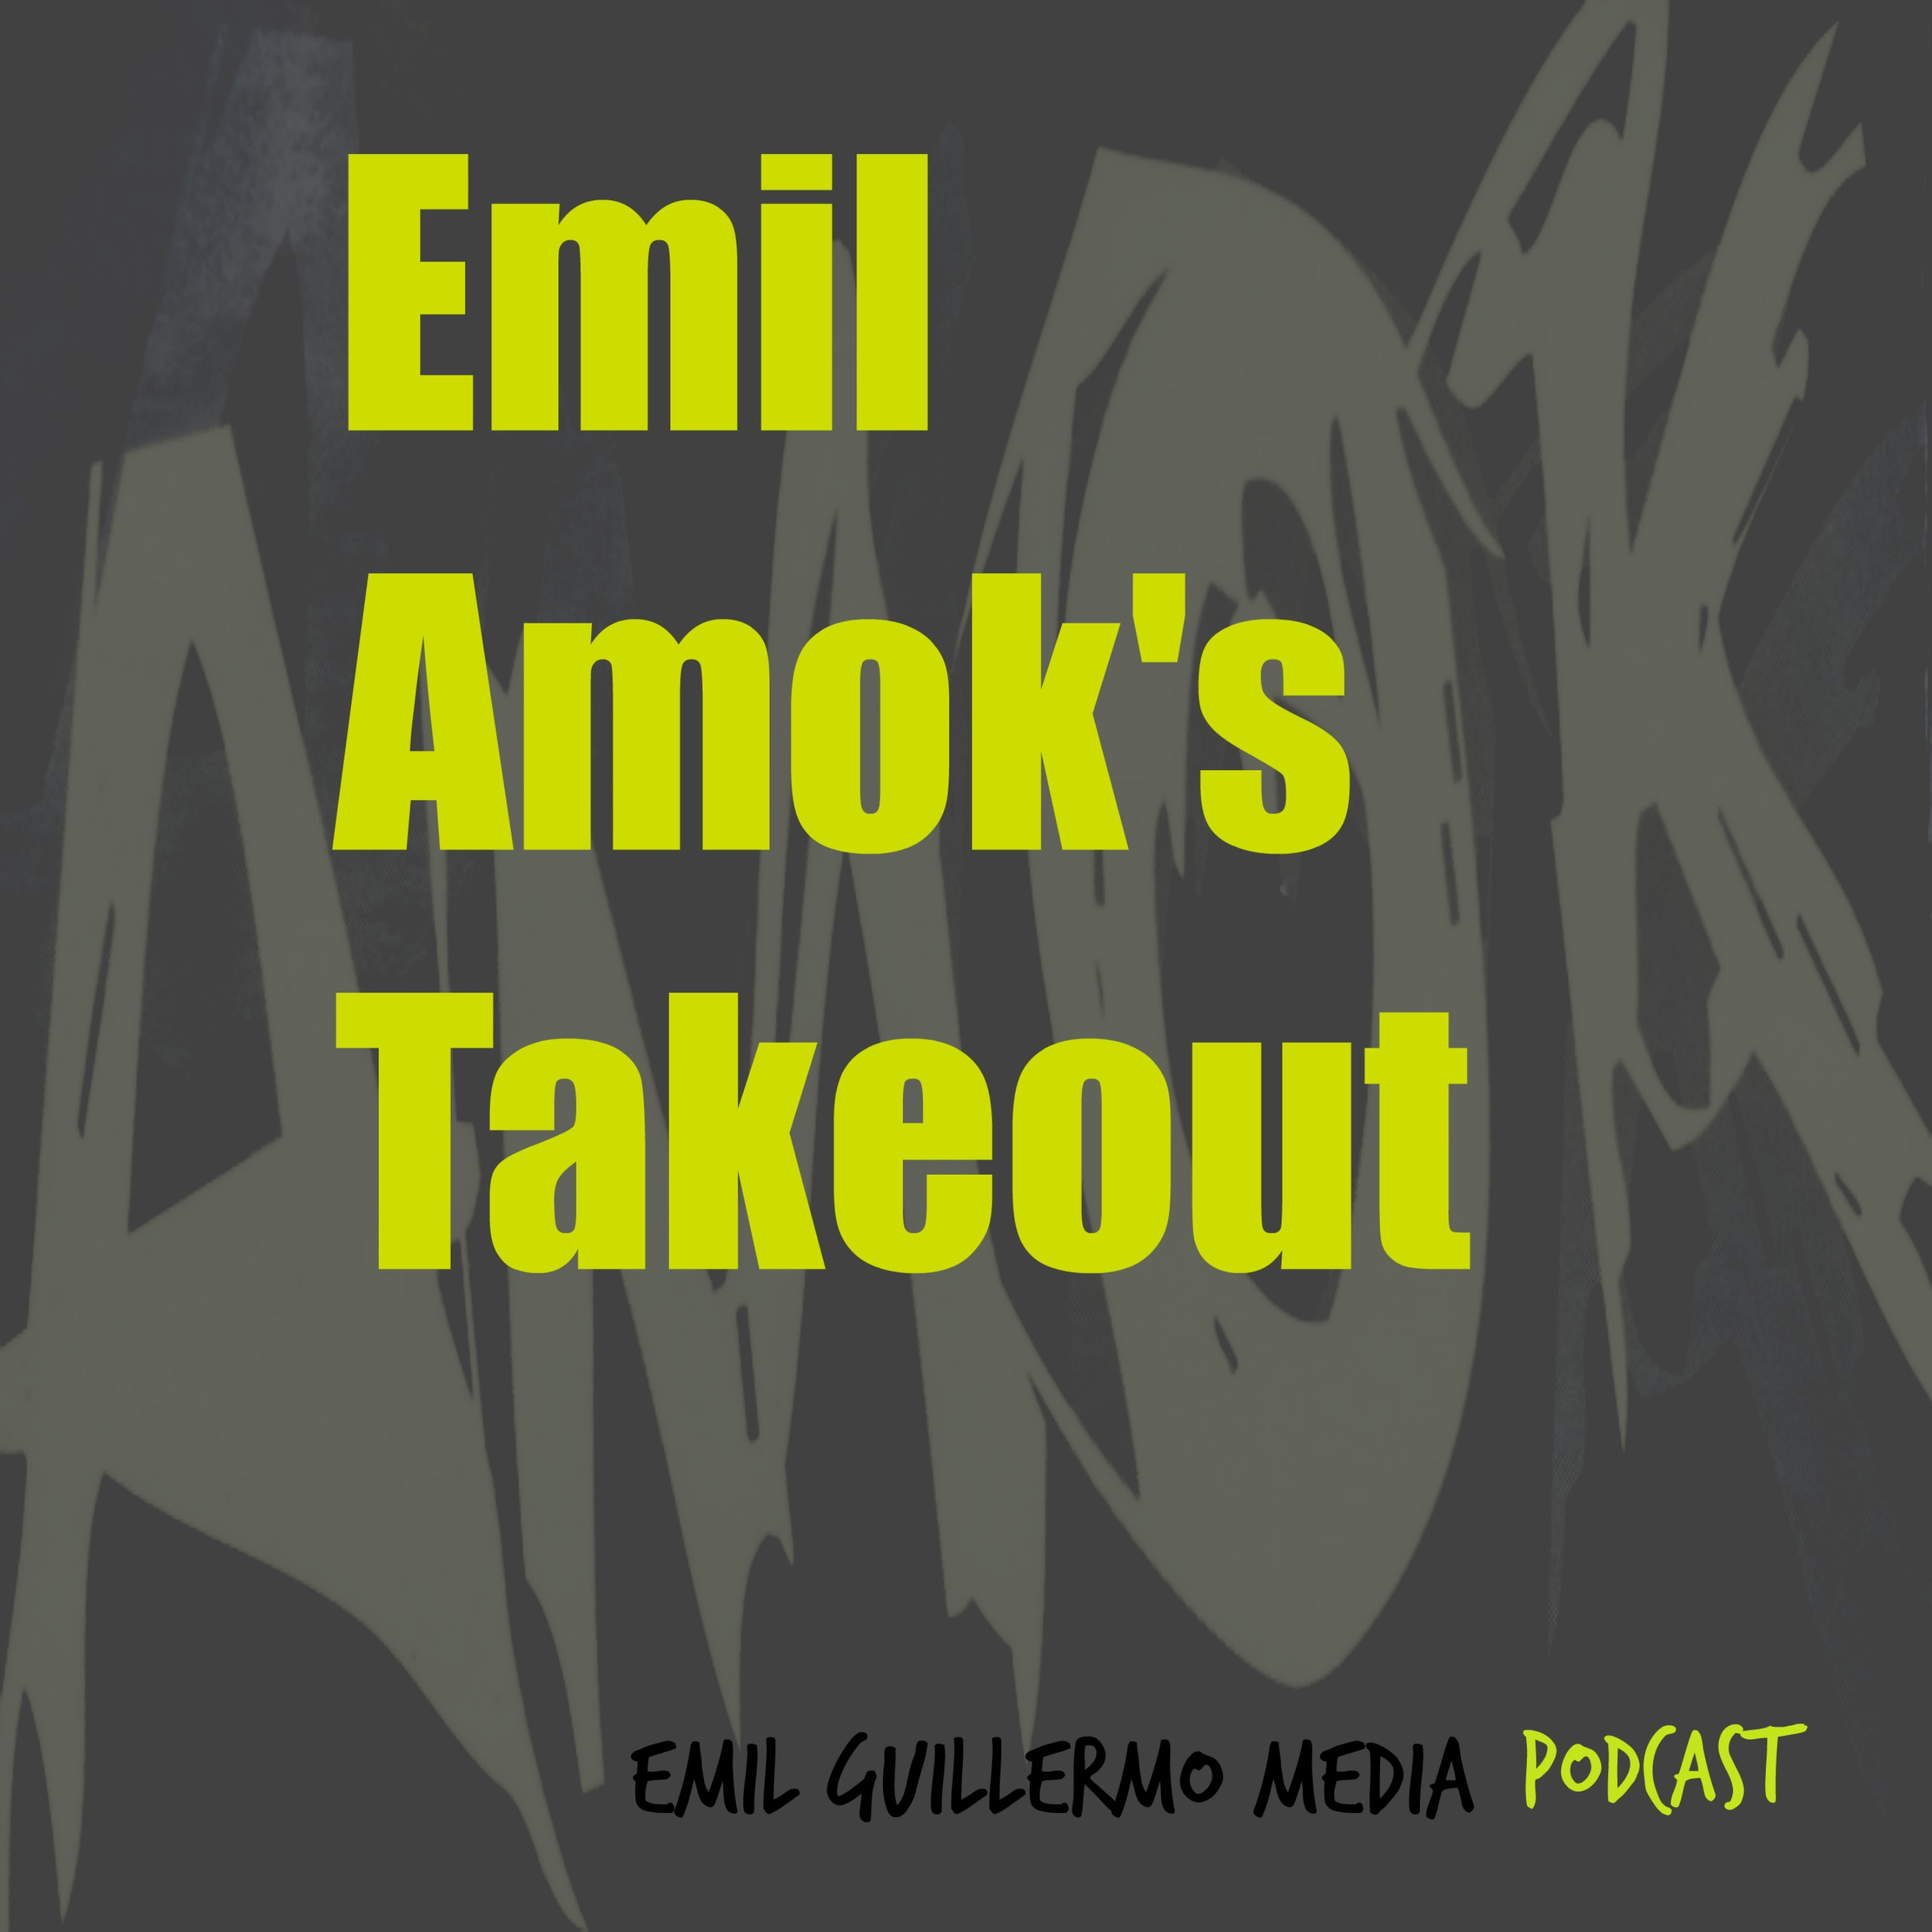 Emil Amok's Takeout from Emil Guillermo Media logo